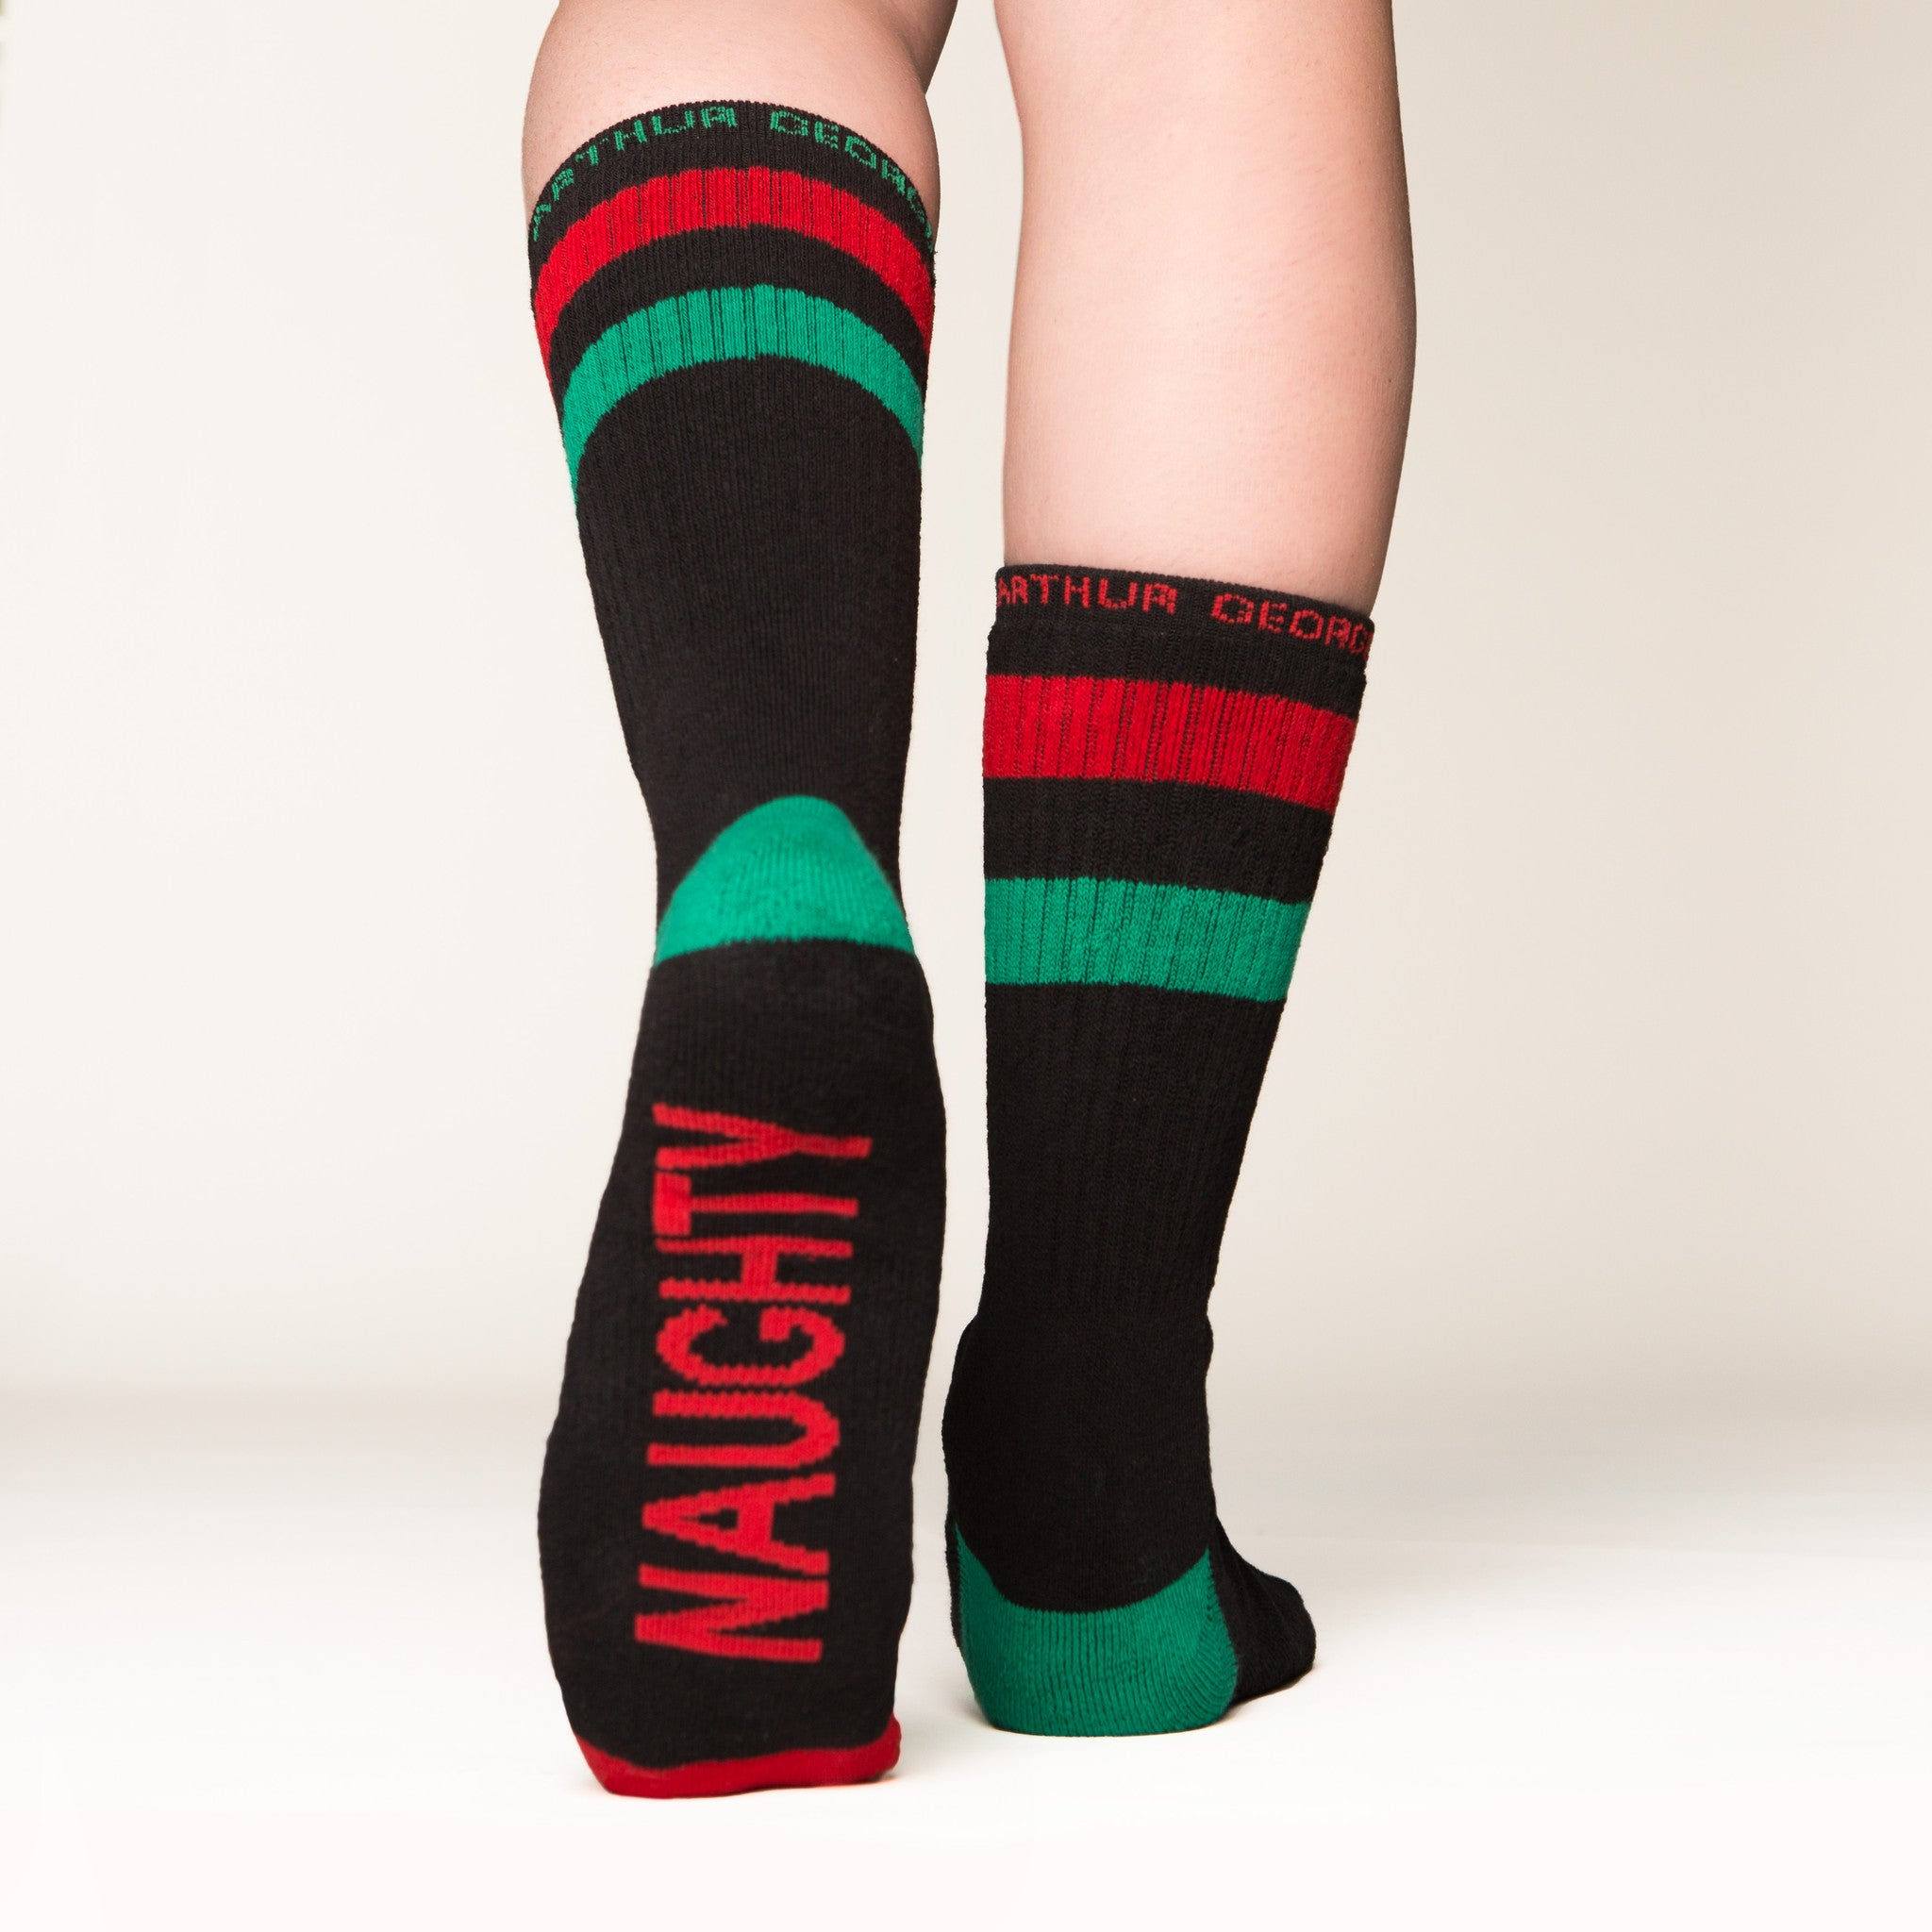 Naughty Nice socks bottom left view